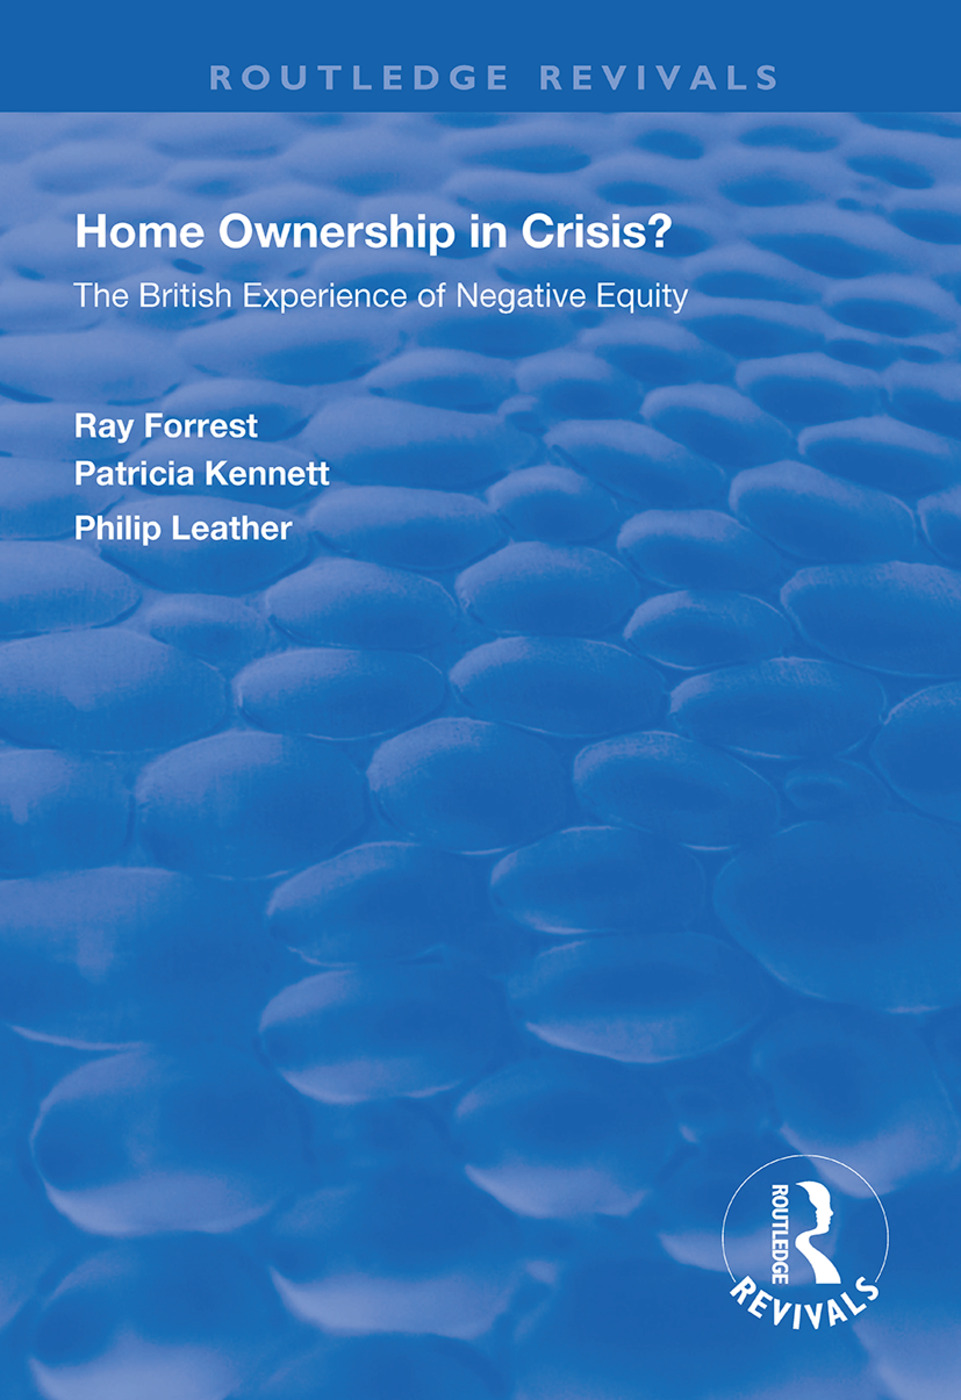 Home Ownership in Crisis?